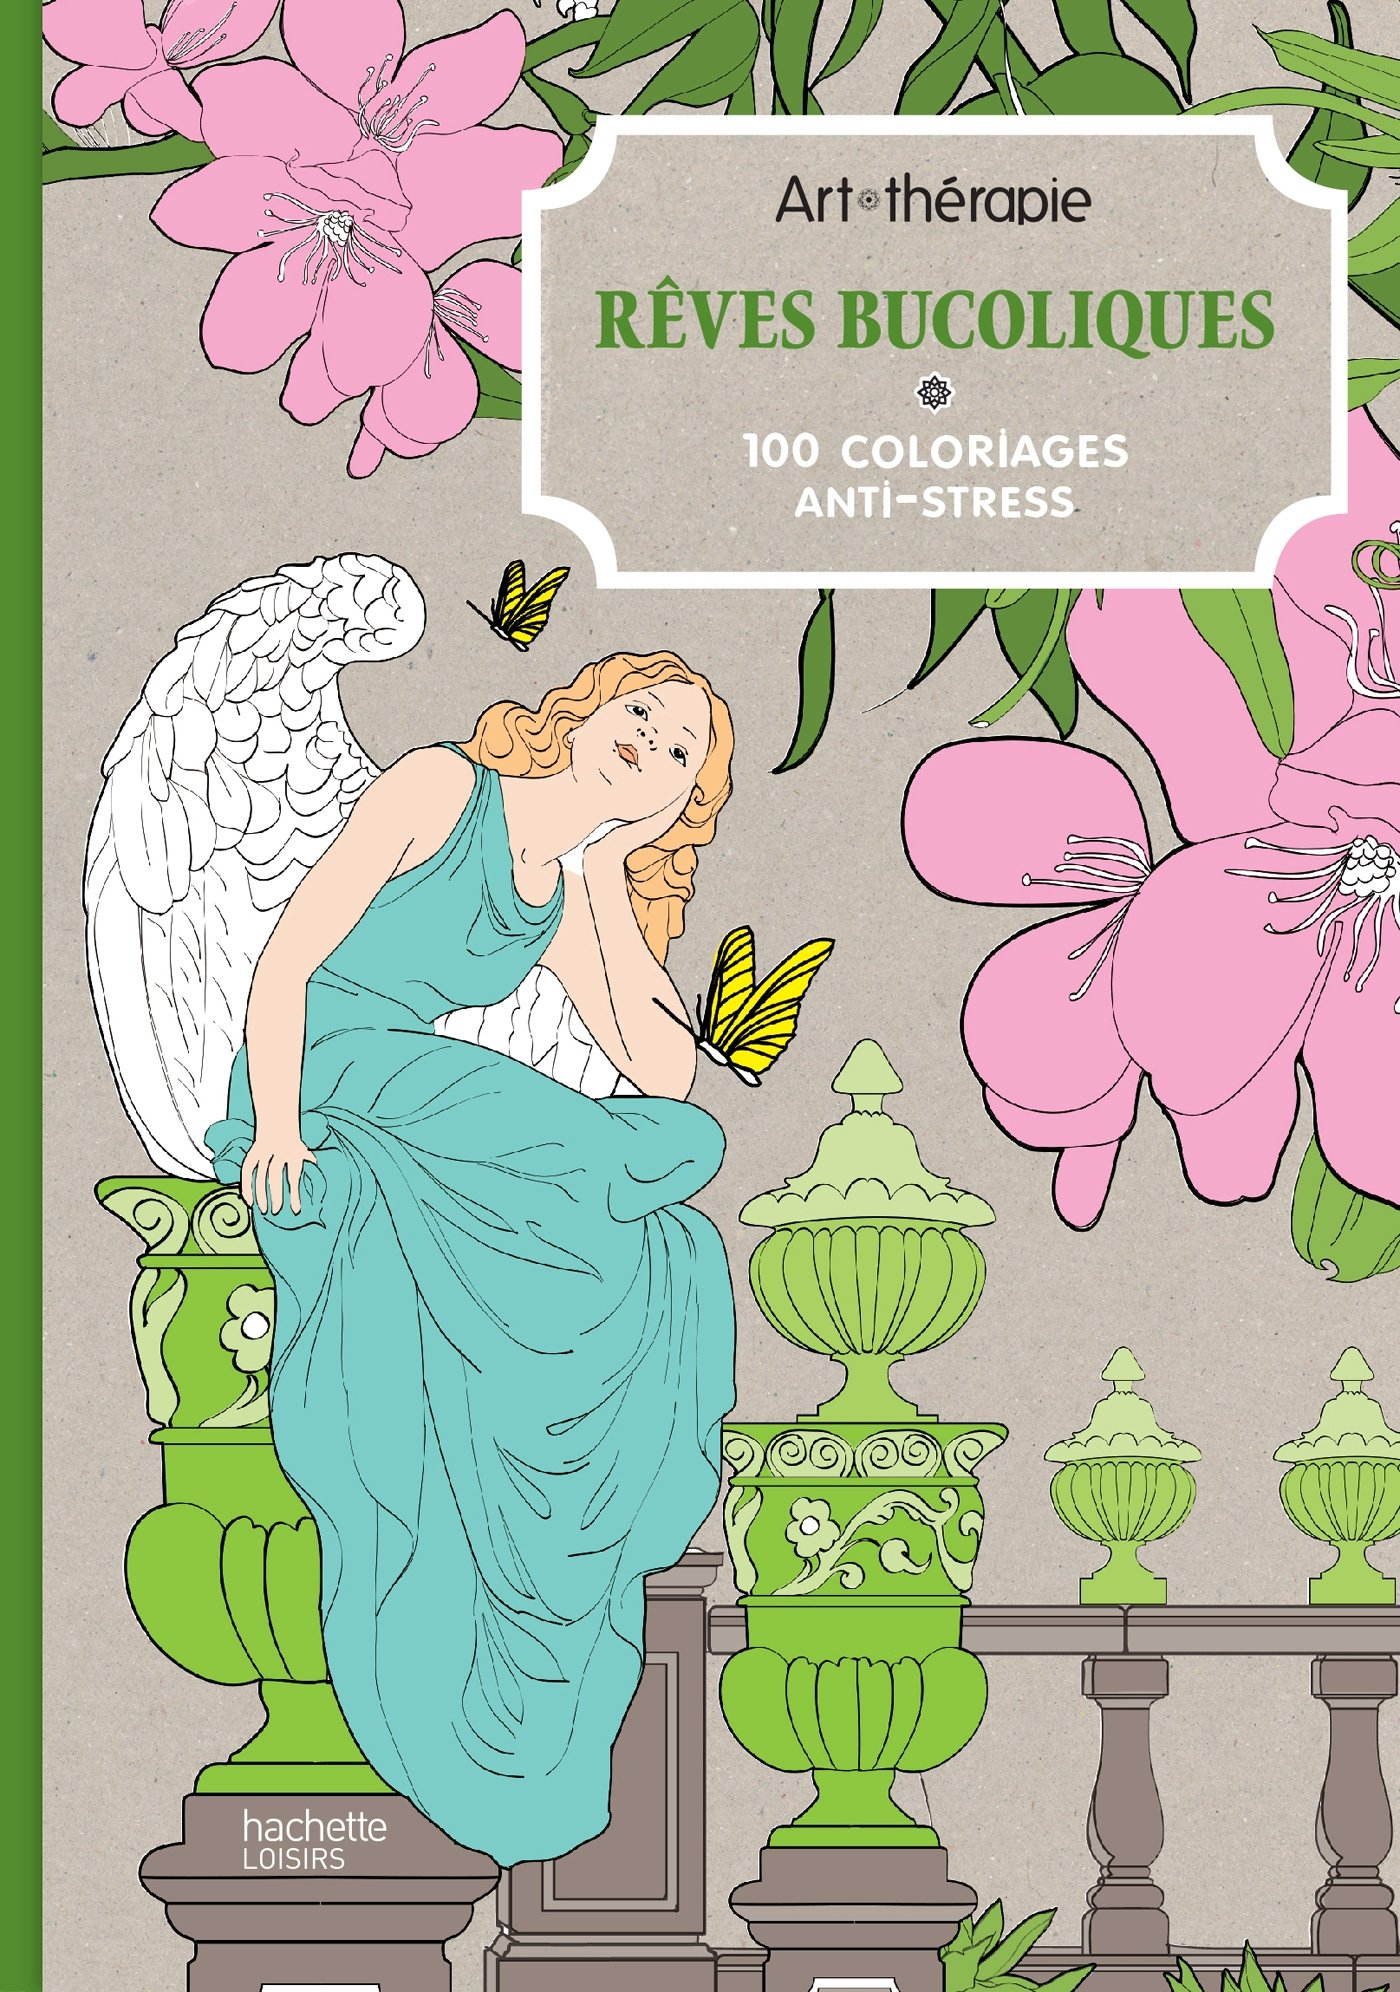 Art therapie Reves bucoliques 100 coloriages anti stress French Edition Collectif Hachette Amazon Books